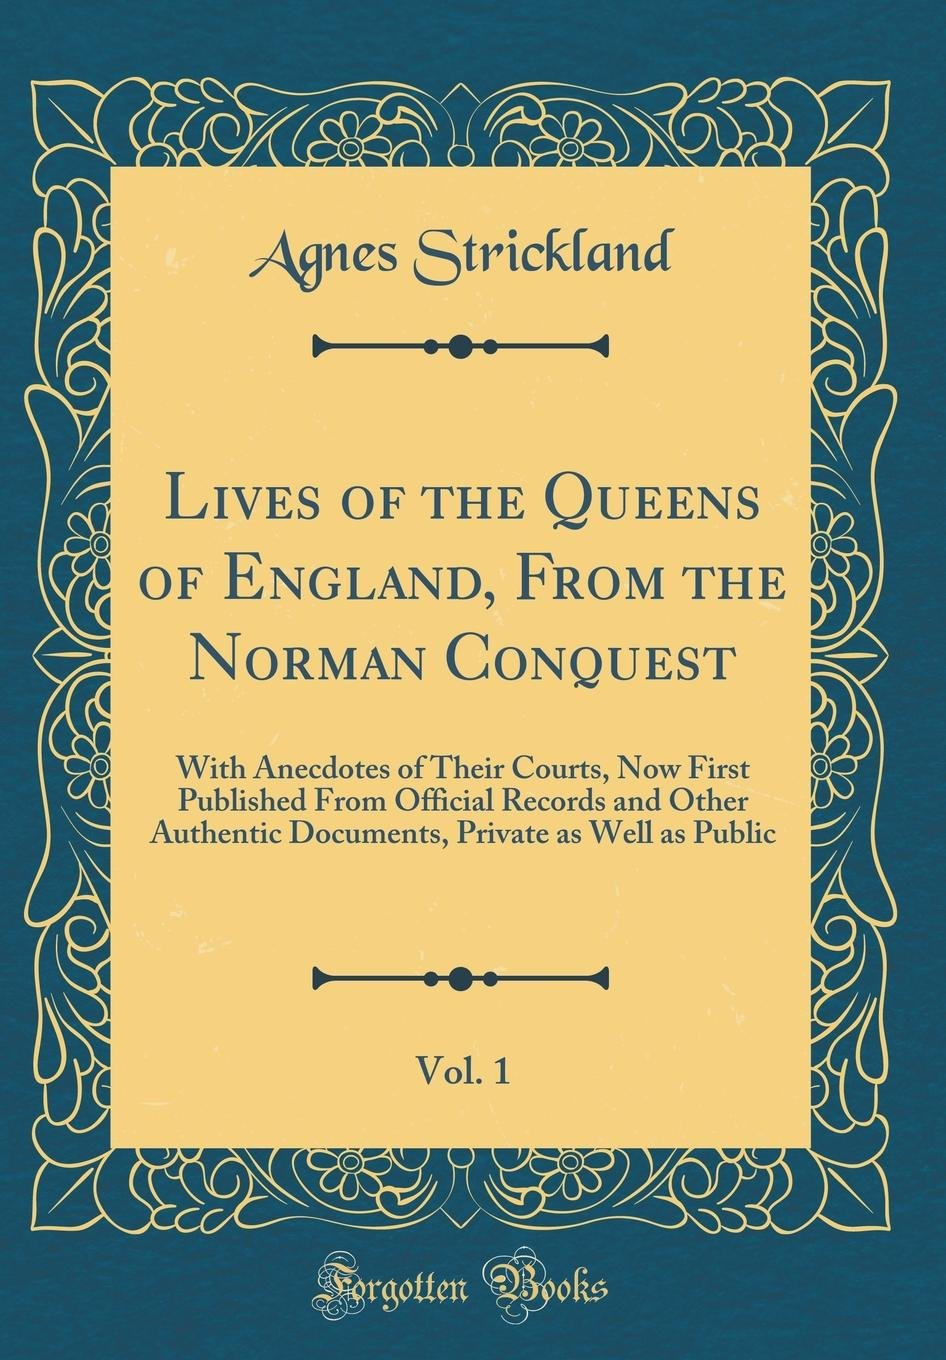 Read Online Lives of the Queens of England, From the Norman Conquest, Vol. 1: With Anecdotes of Their Courts, Now First Published From Official Records and Other Private as Well as Public (Classic Reprint) pdf